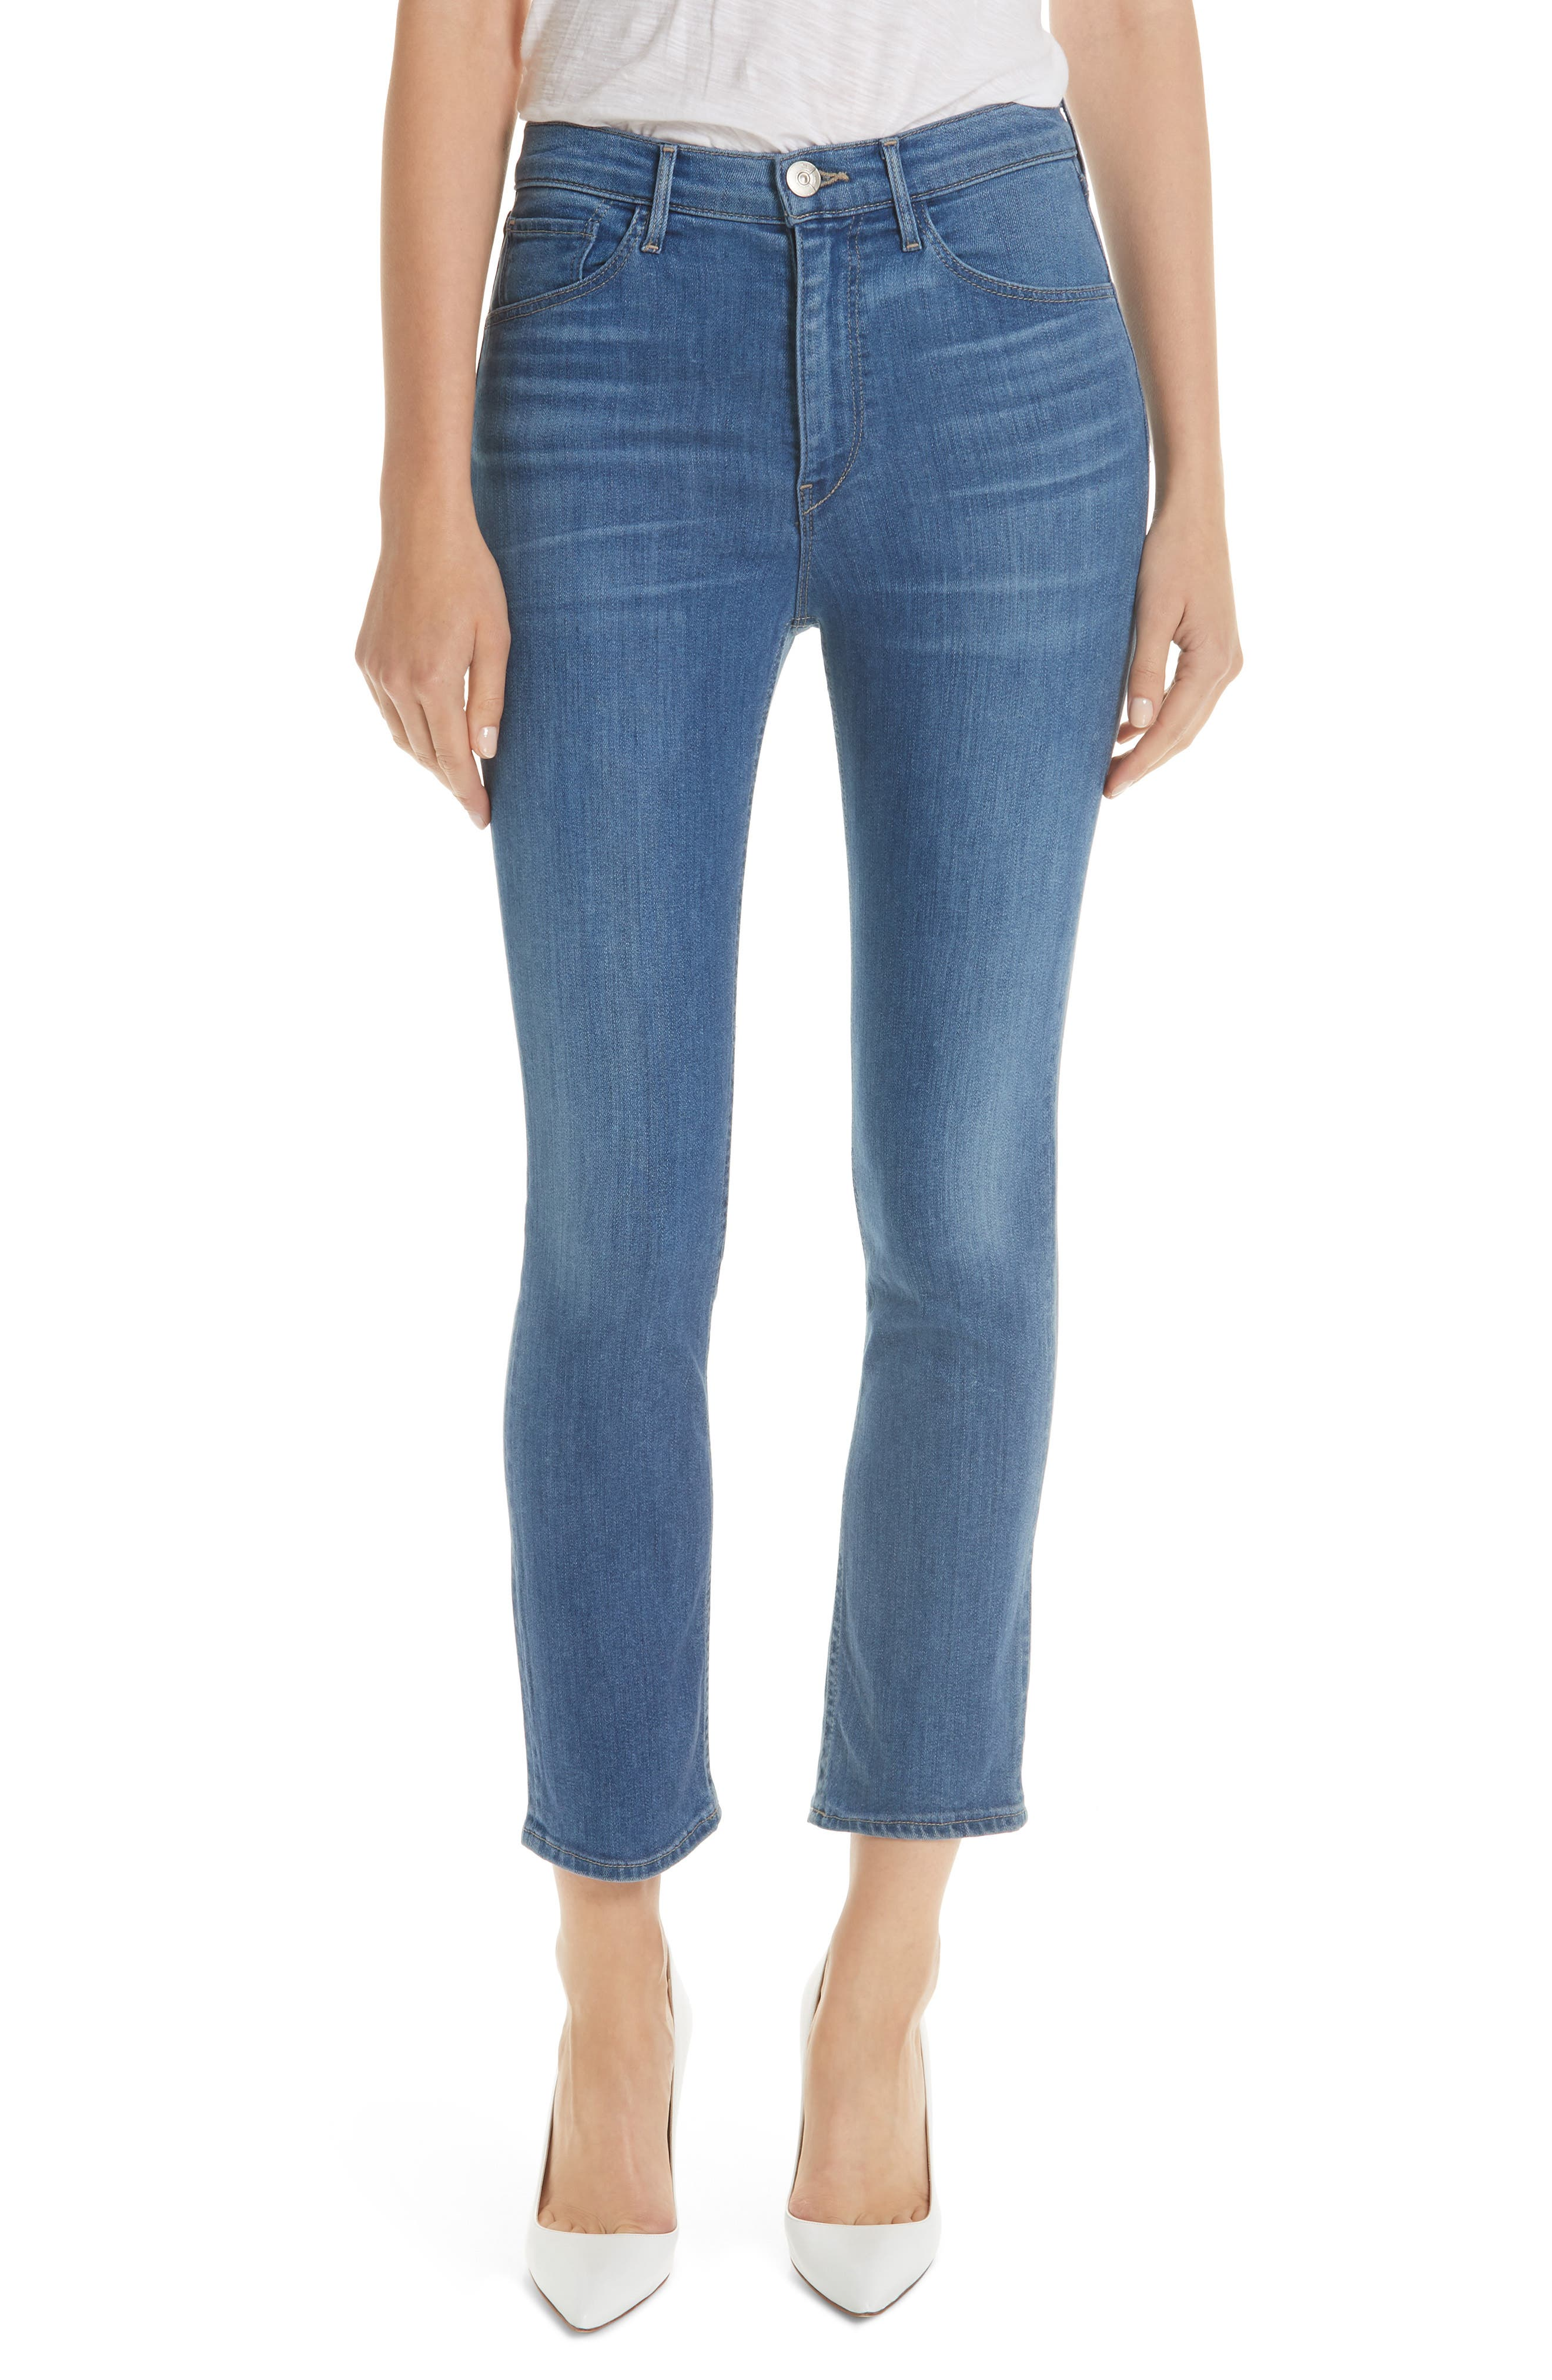 W4 Colette Crop Skinny Jeans,                             Main thumbnail 1, color,                             MILLY